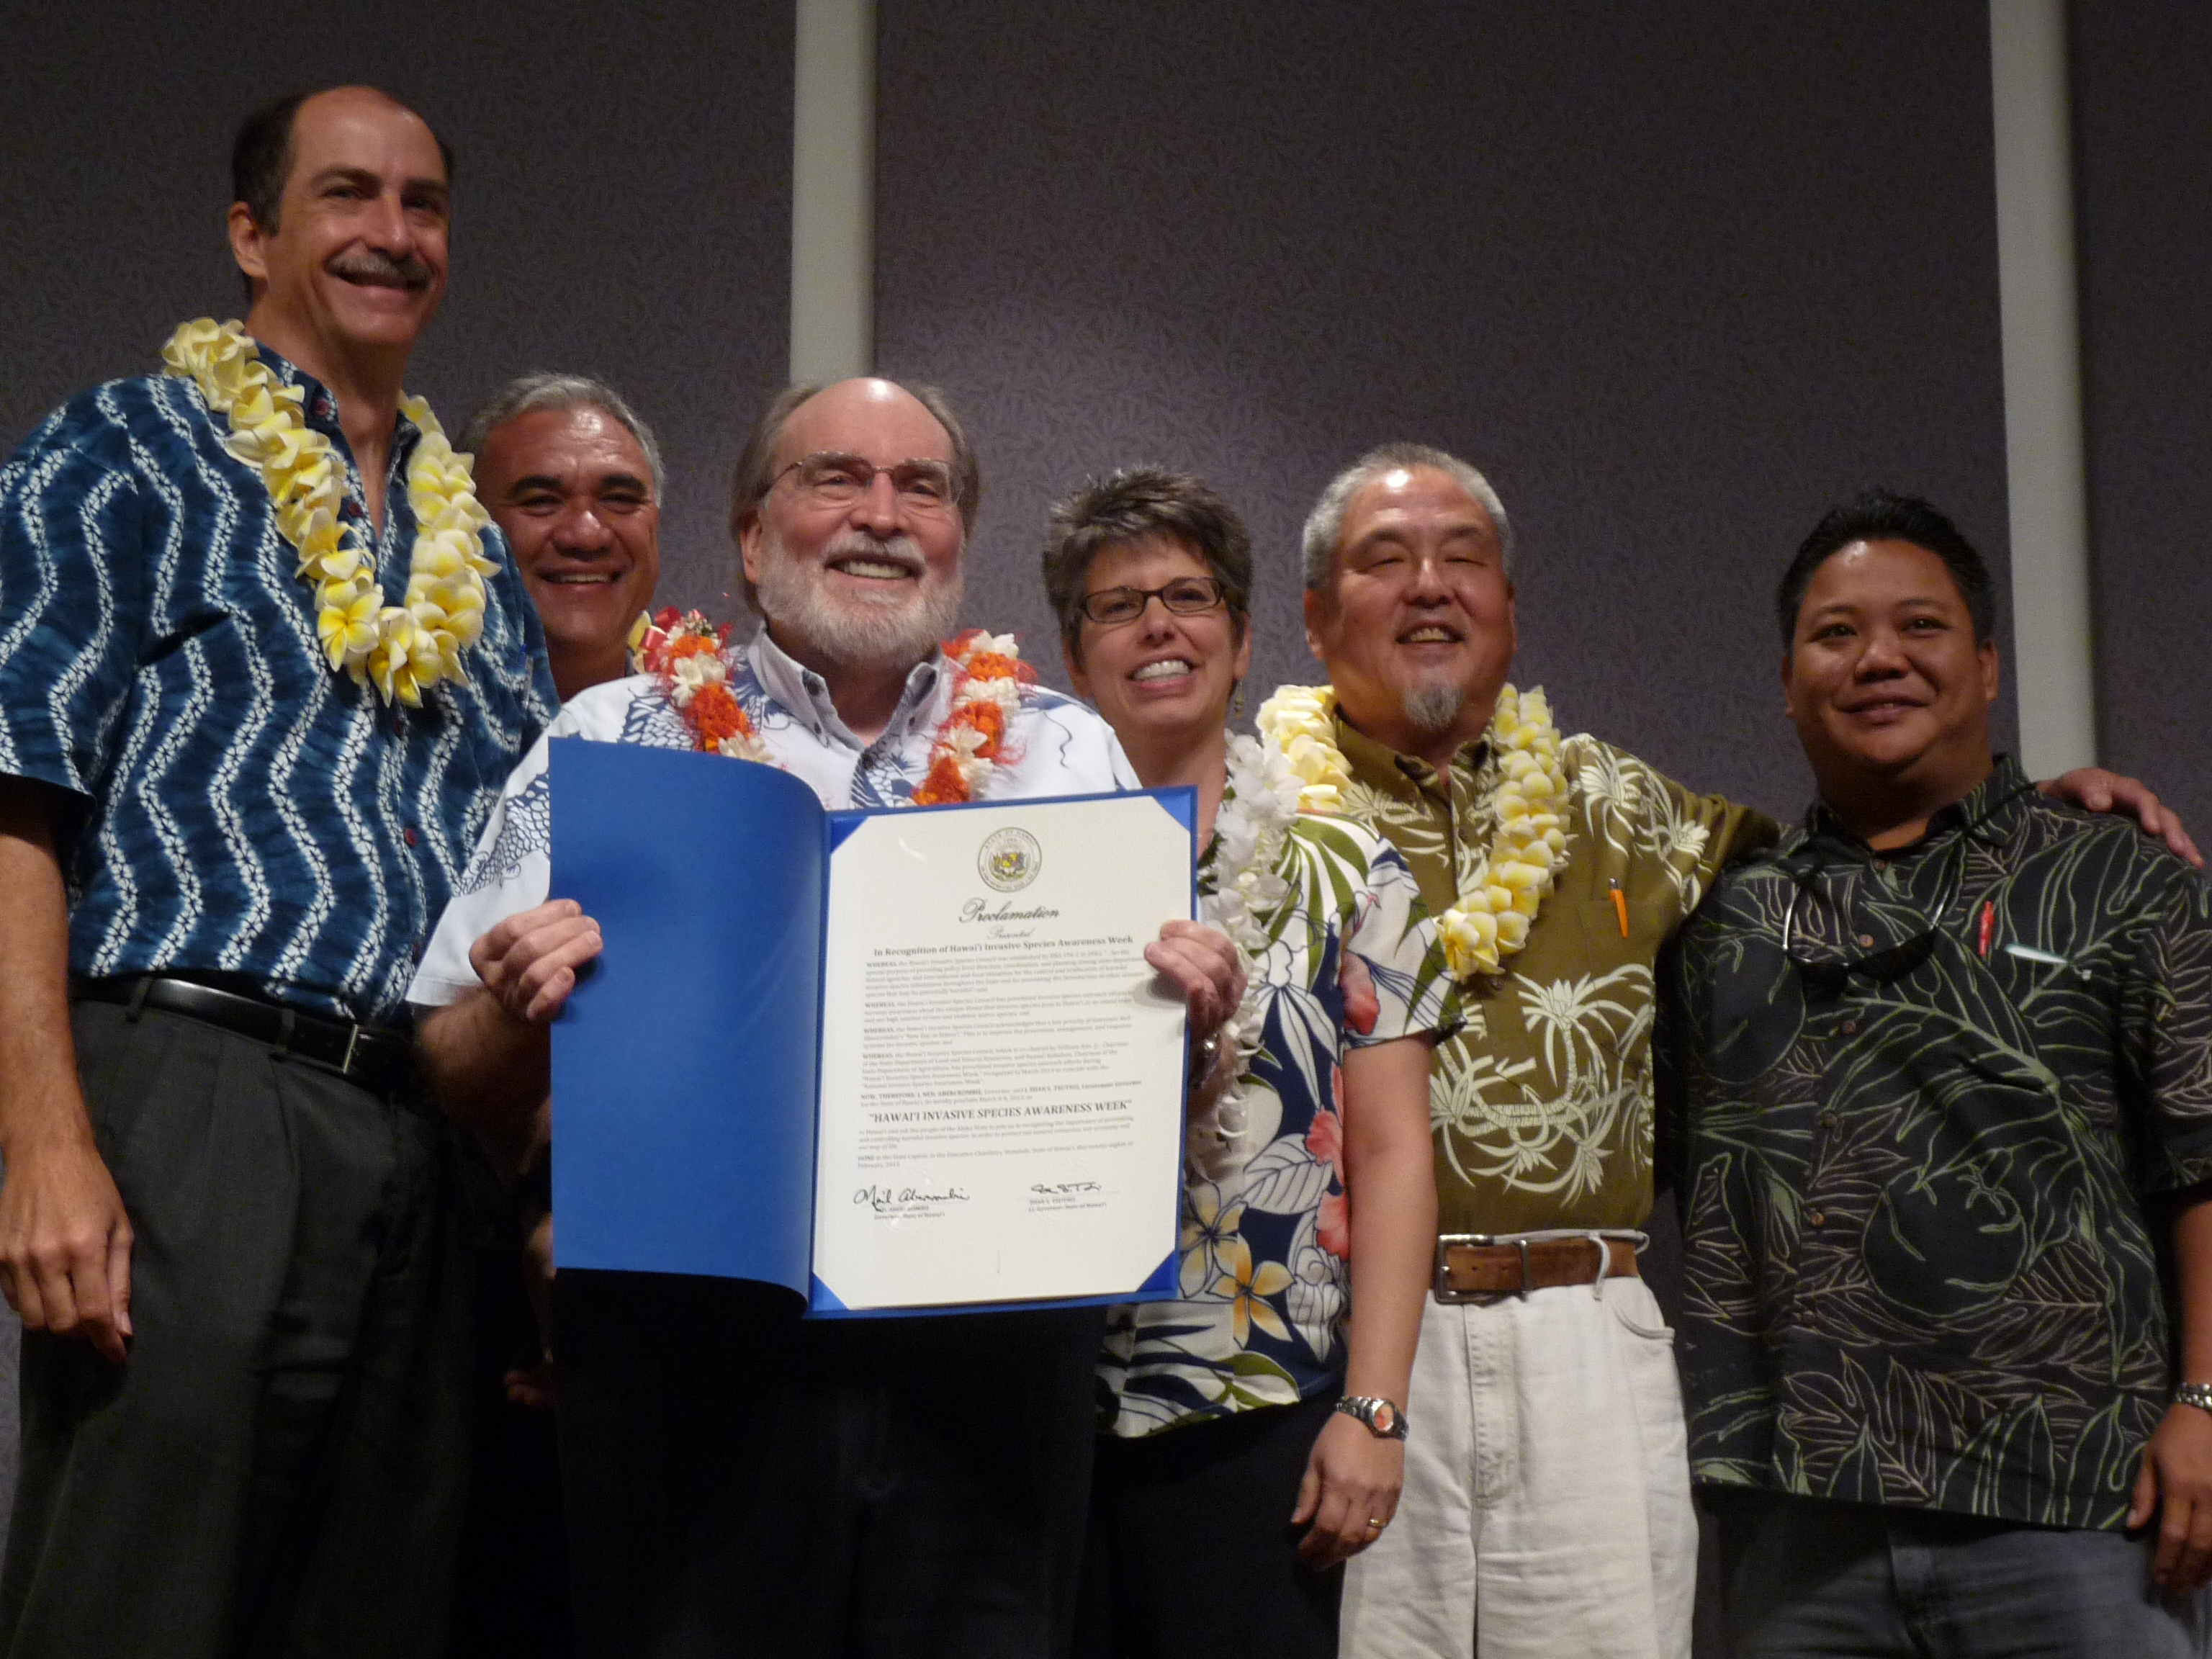 Governor Neil Abercrombie (center) gives the proclamation for the first Hawaii Invasive Species Awareness Week to members of the HISC including (l to r) Gary Gill (DOH), William J. Aila, Jr., Dr. Maria Gallo (UH), Russell Kokubun (HDOA), and David Rodriguez (DOT)